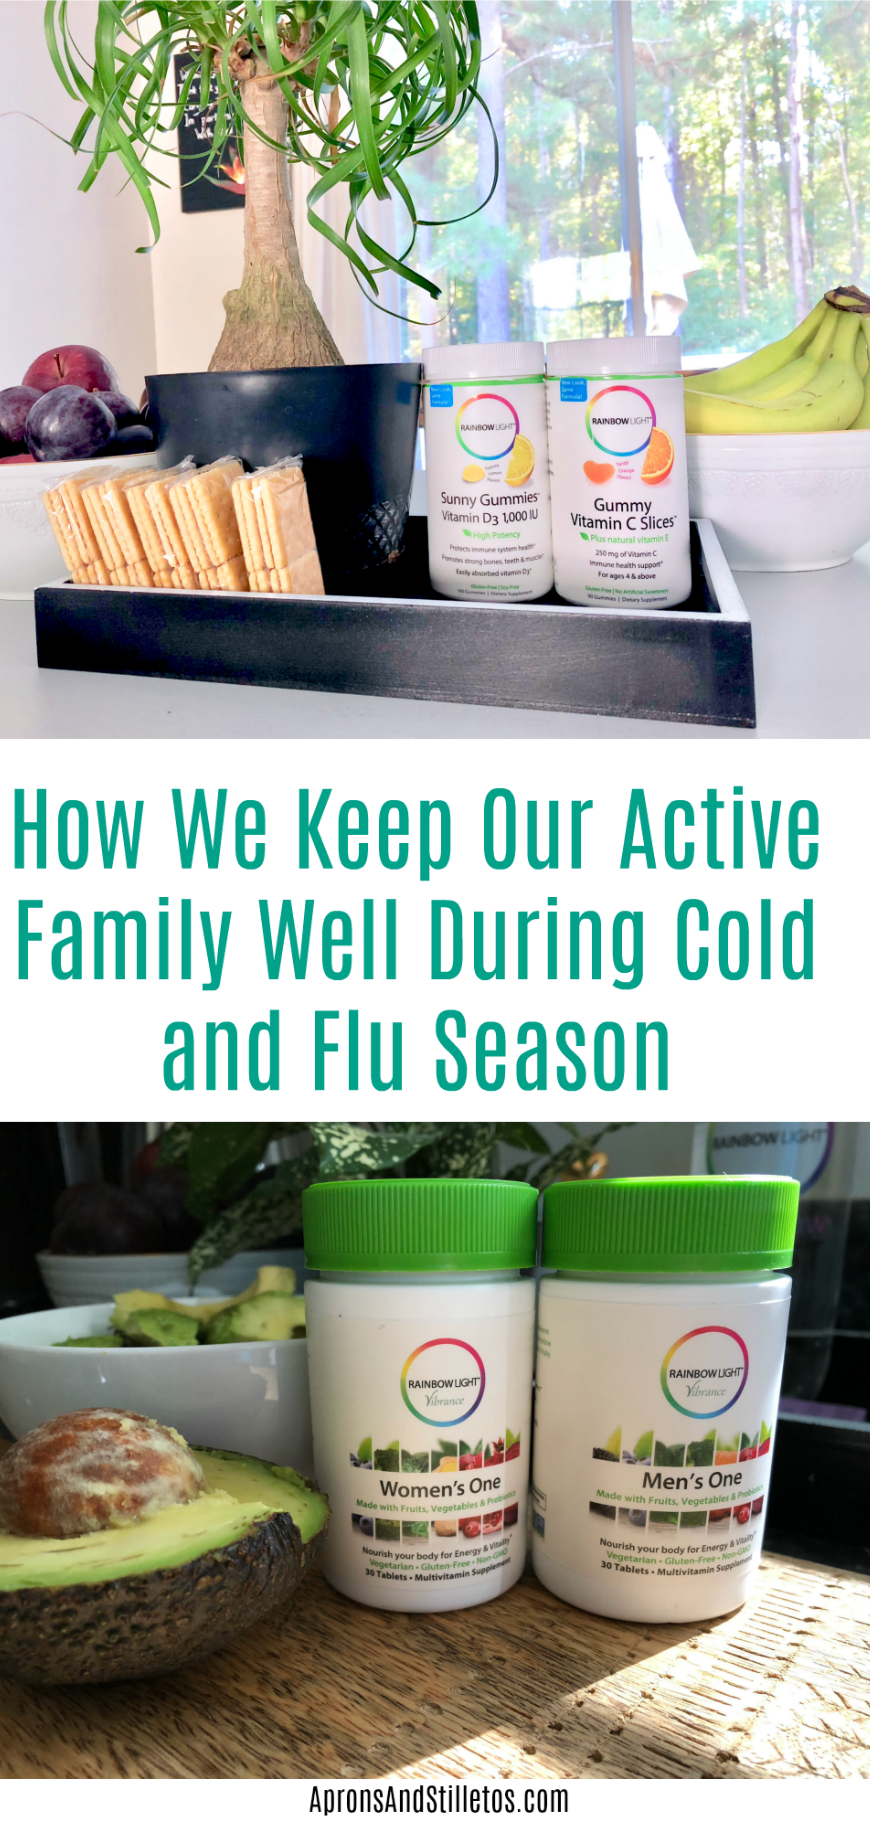 How We Keep Our Active Family Well During Cold and Flu Season